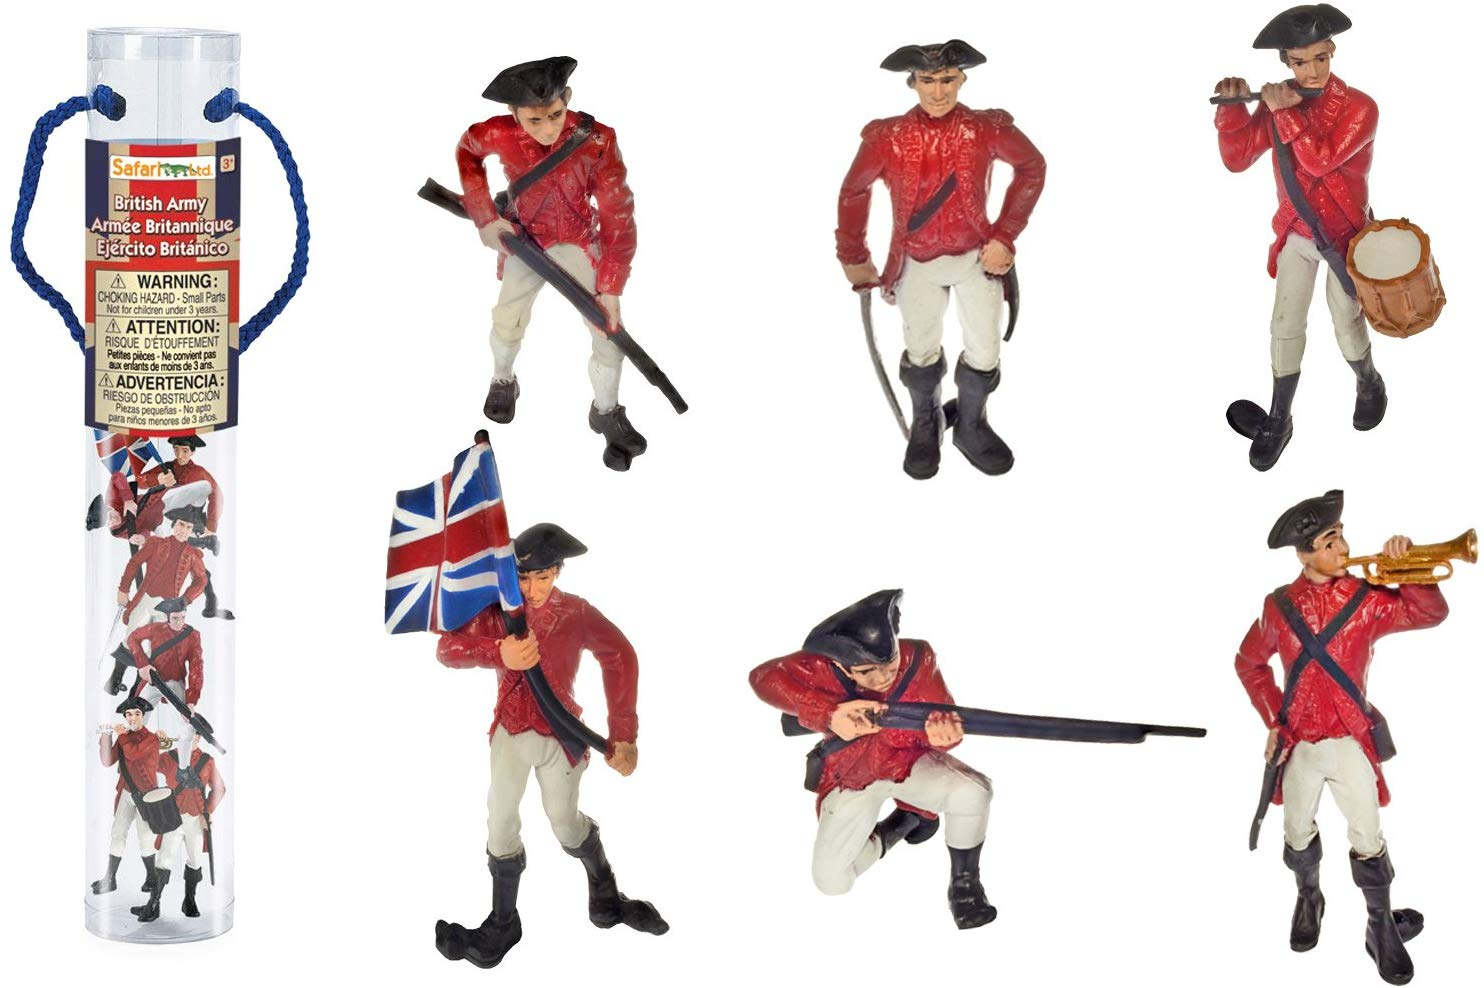 Safari Ltd Historical Collections American Revolutionary War British Army  Designer TOOB.